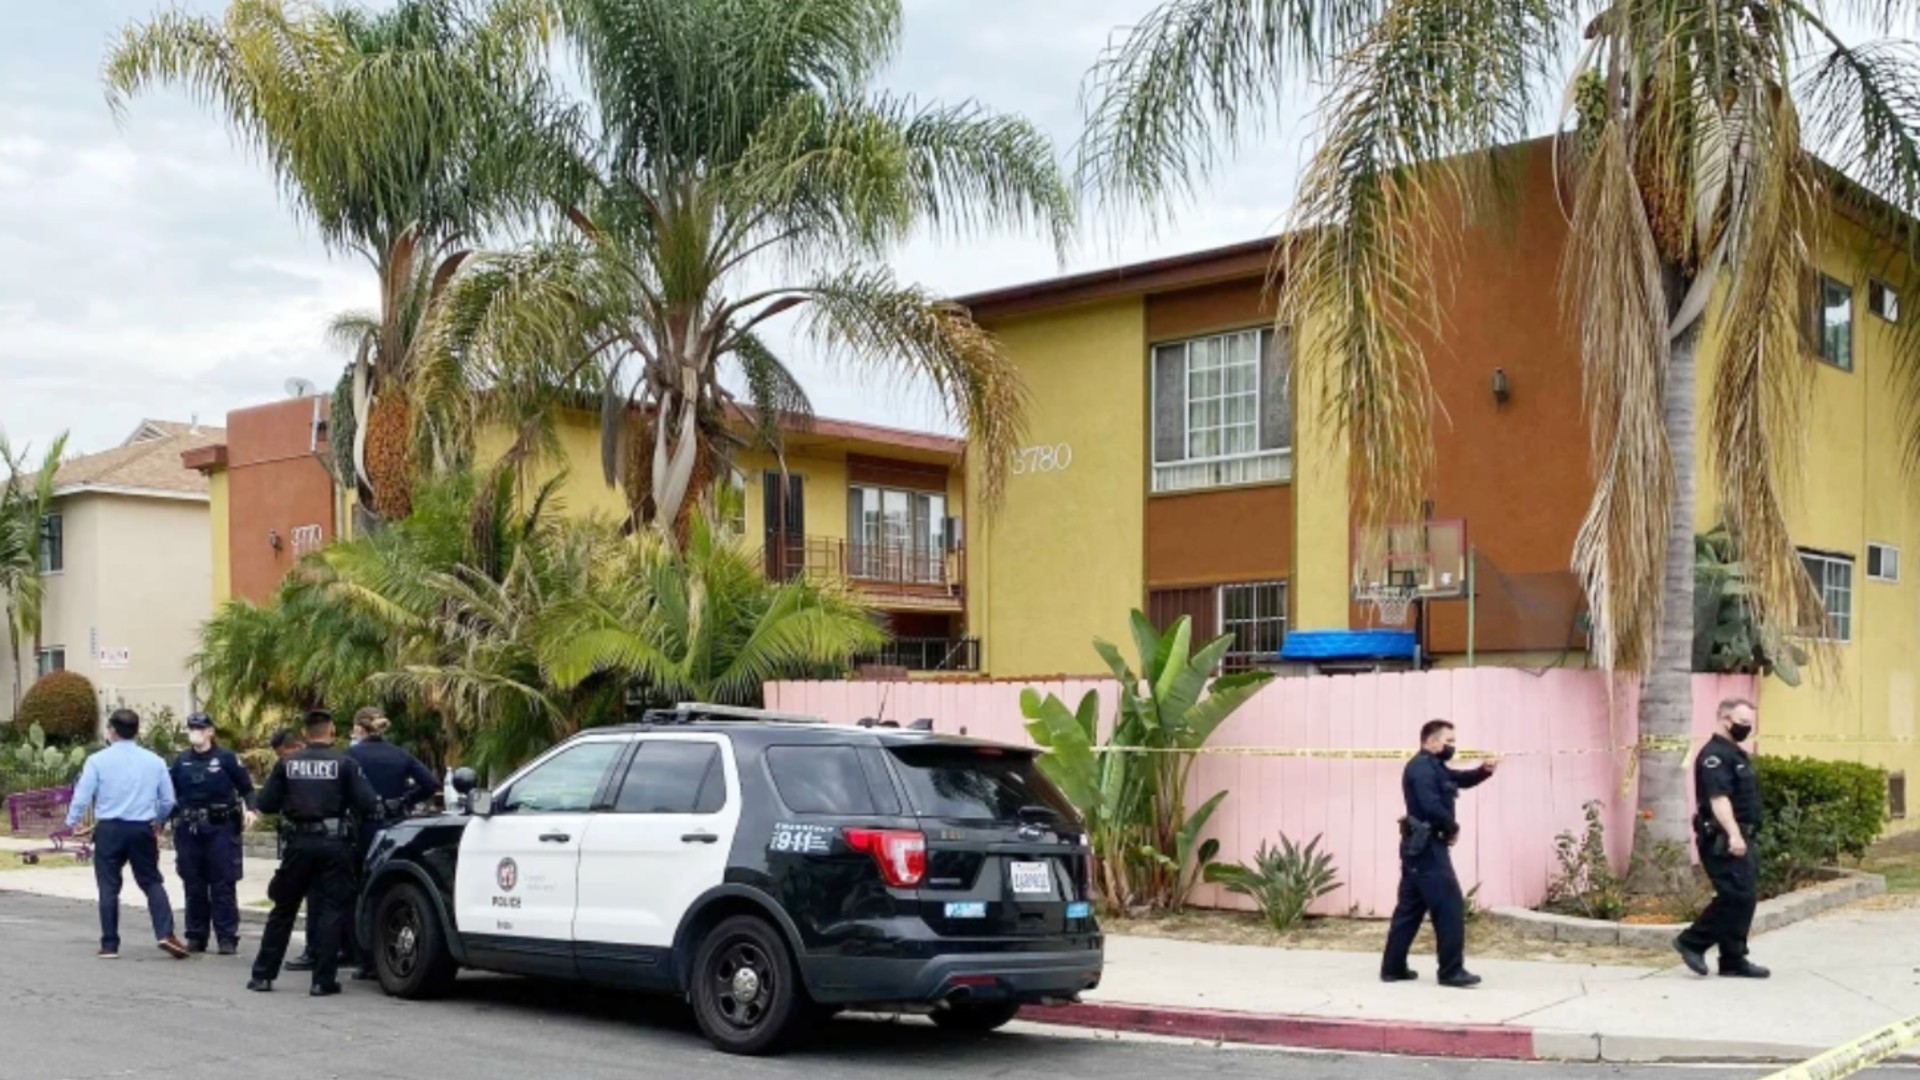 An investigation is underway following a fatal officer involved shooting shooting in the Sawtelle area that left one man dead.(Kevin Rector/Los Angeles Times)